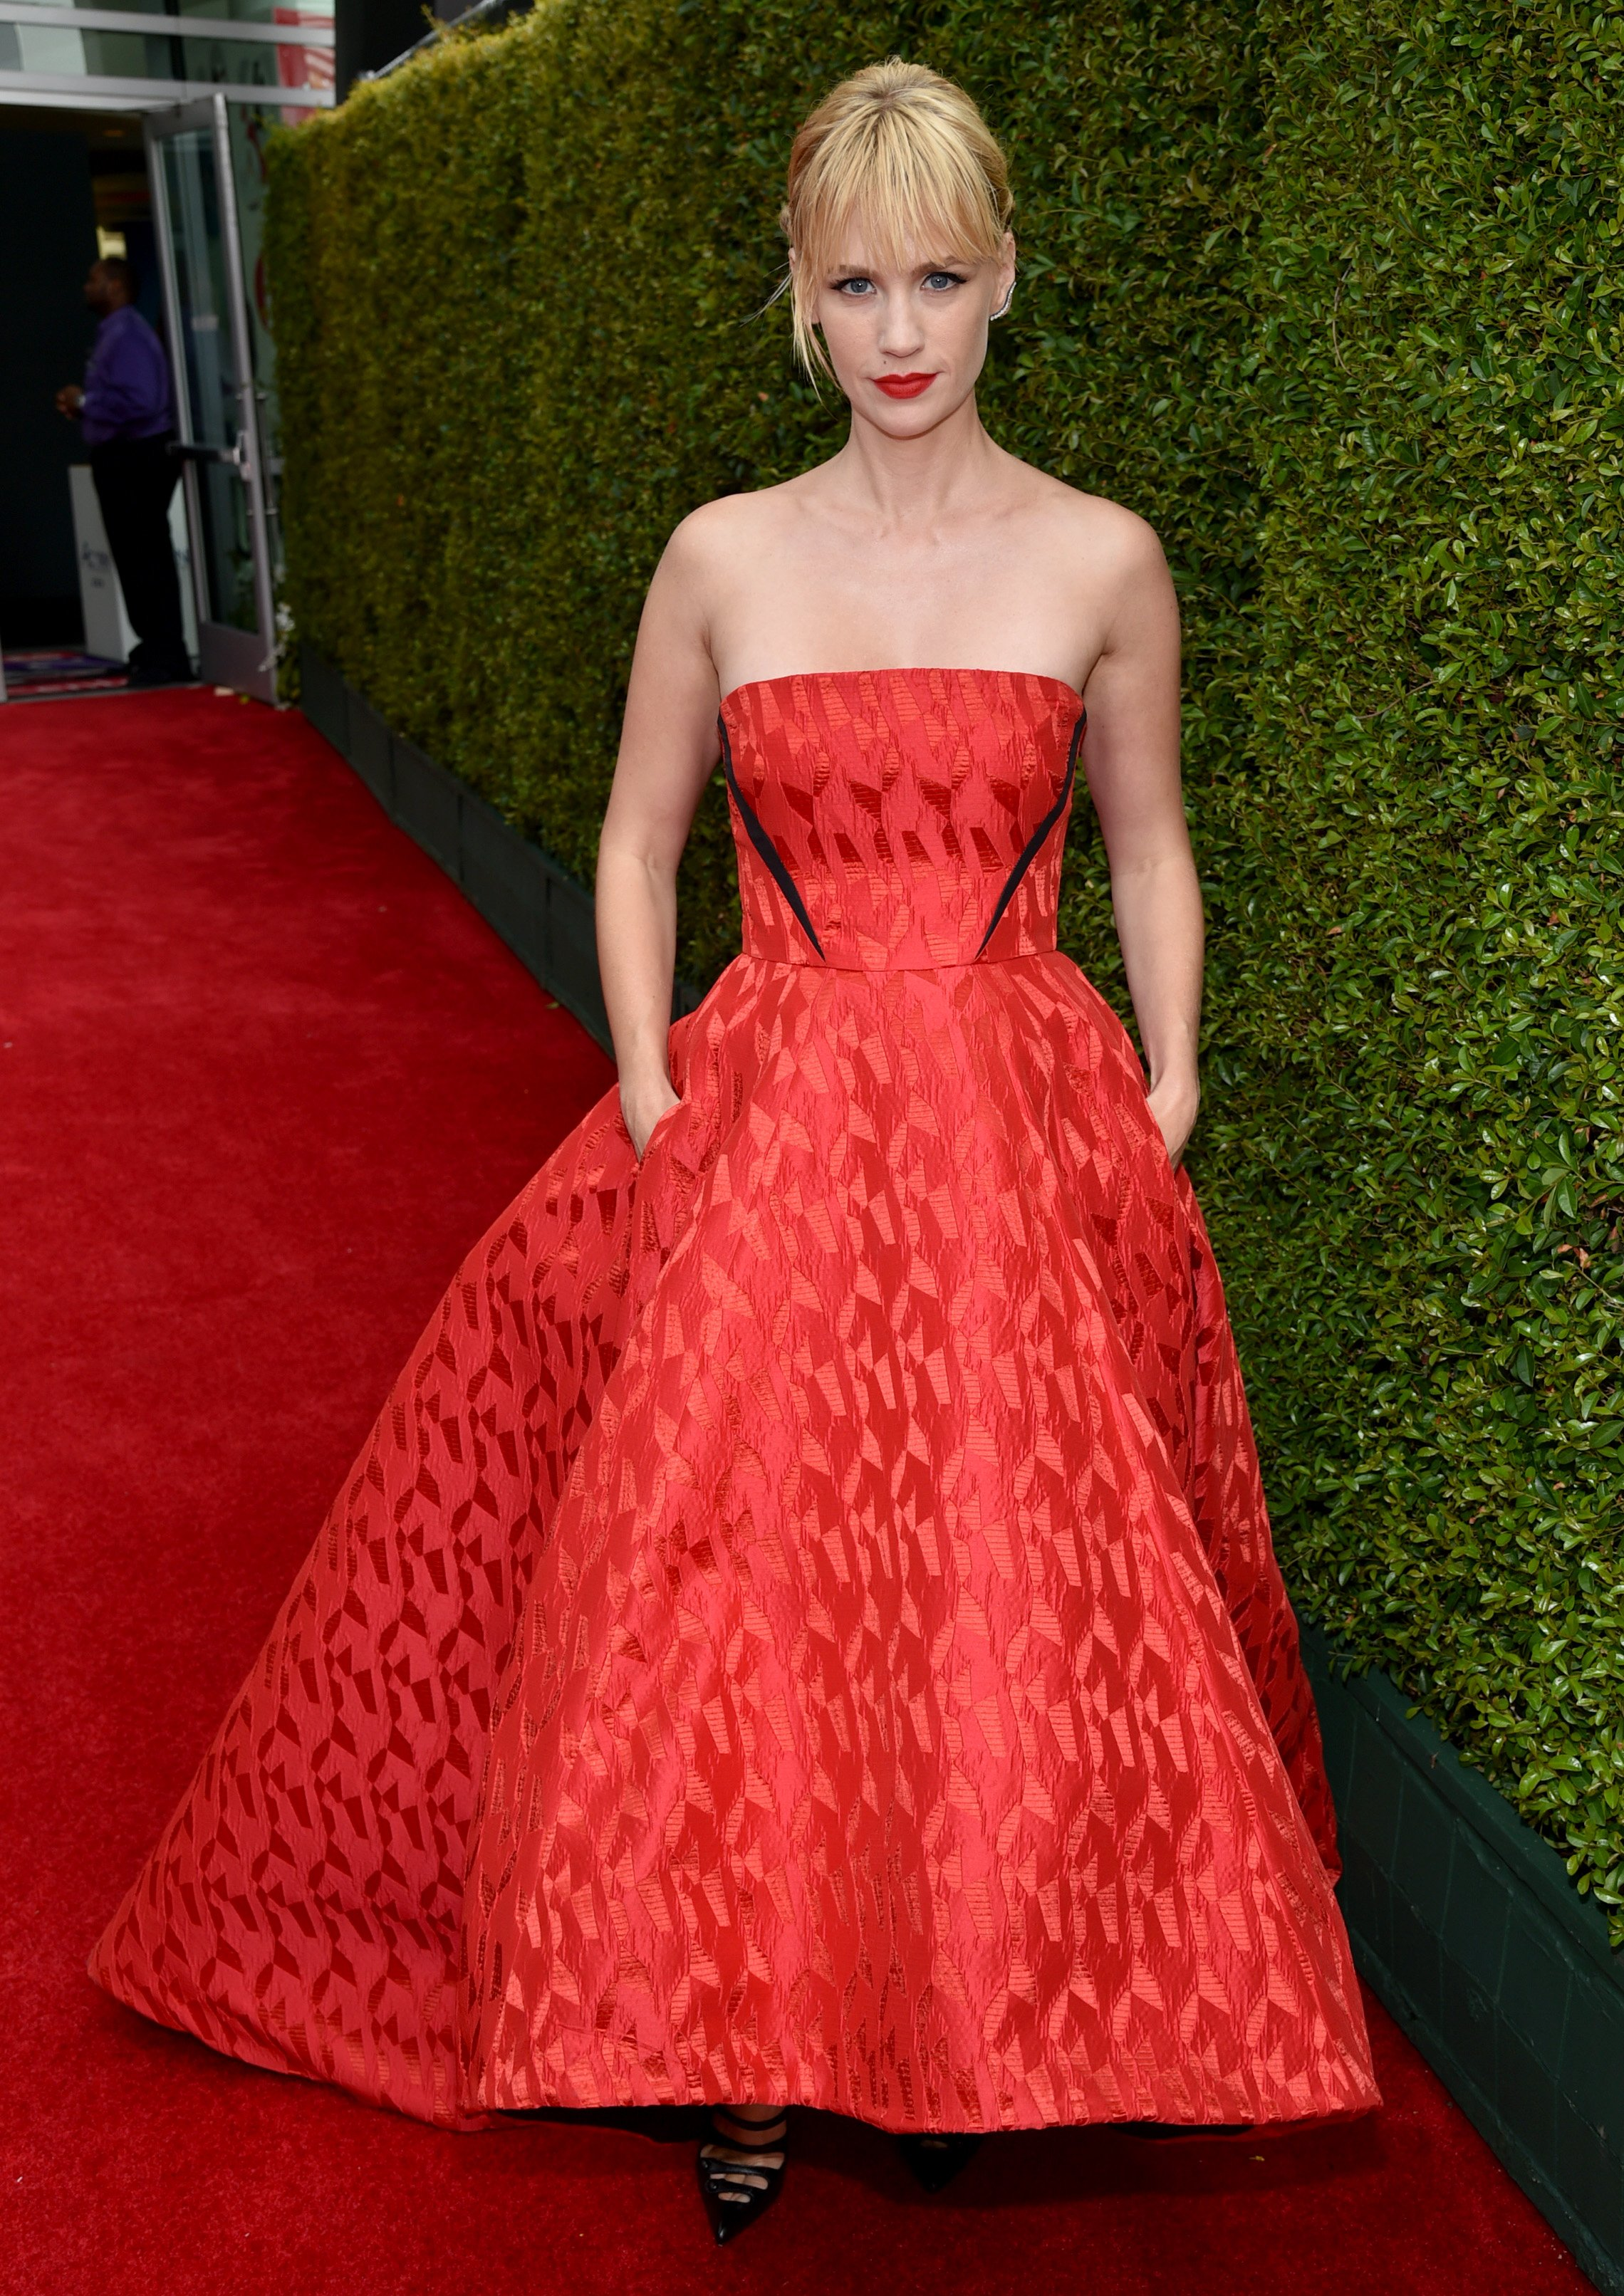 January Jones arrives at the 66th Primetime Emmy Awards at the Nokia Theatre L.A. Live on Monday, Aug. 25, 2014, in Los Angeles.